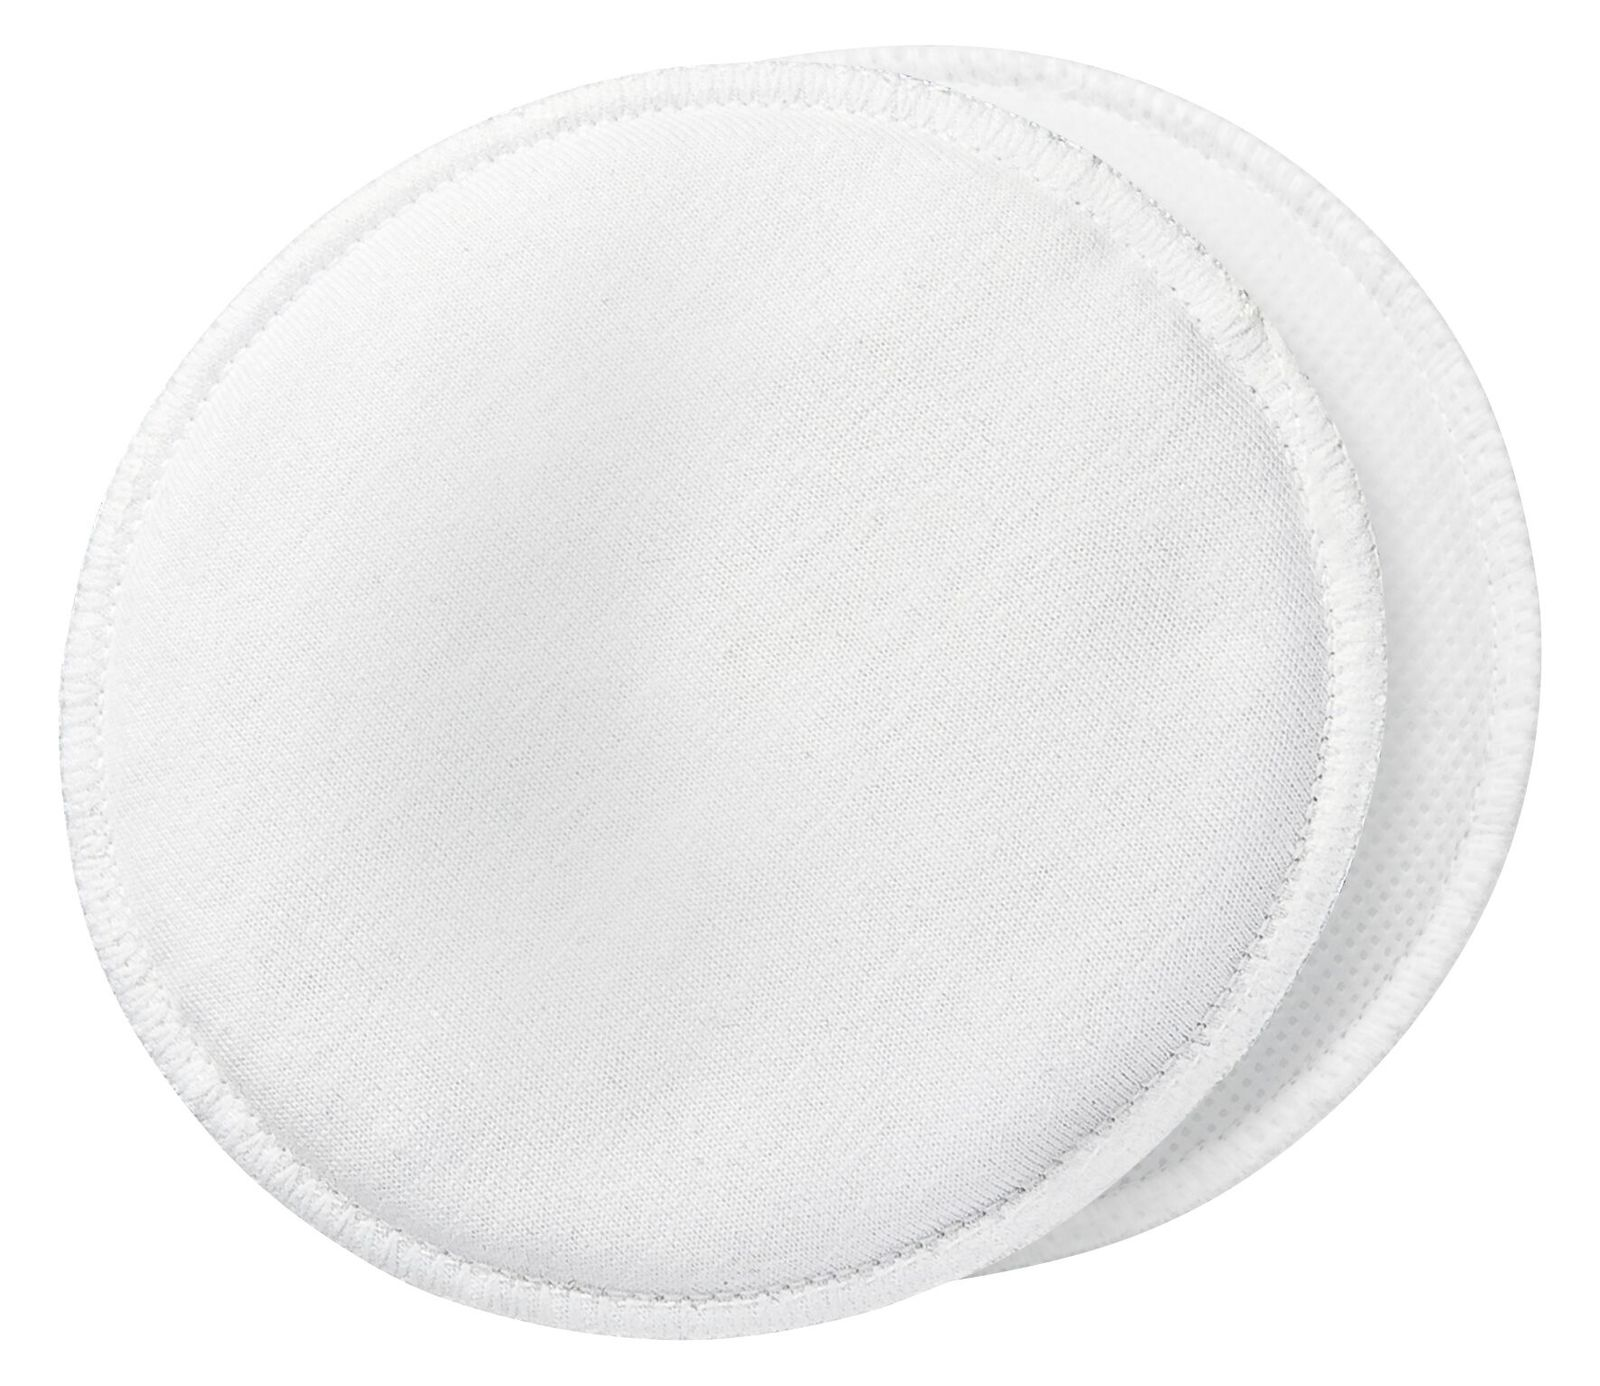 NUK: Washable Breast Pads (Pack of 4) image